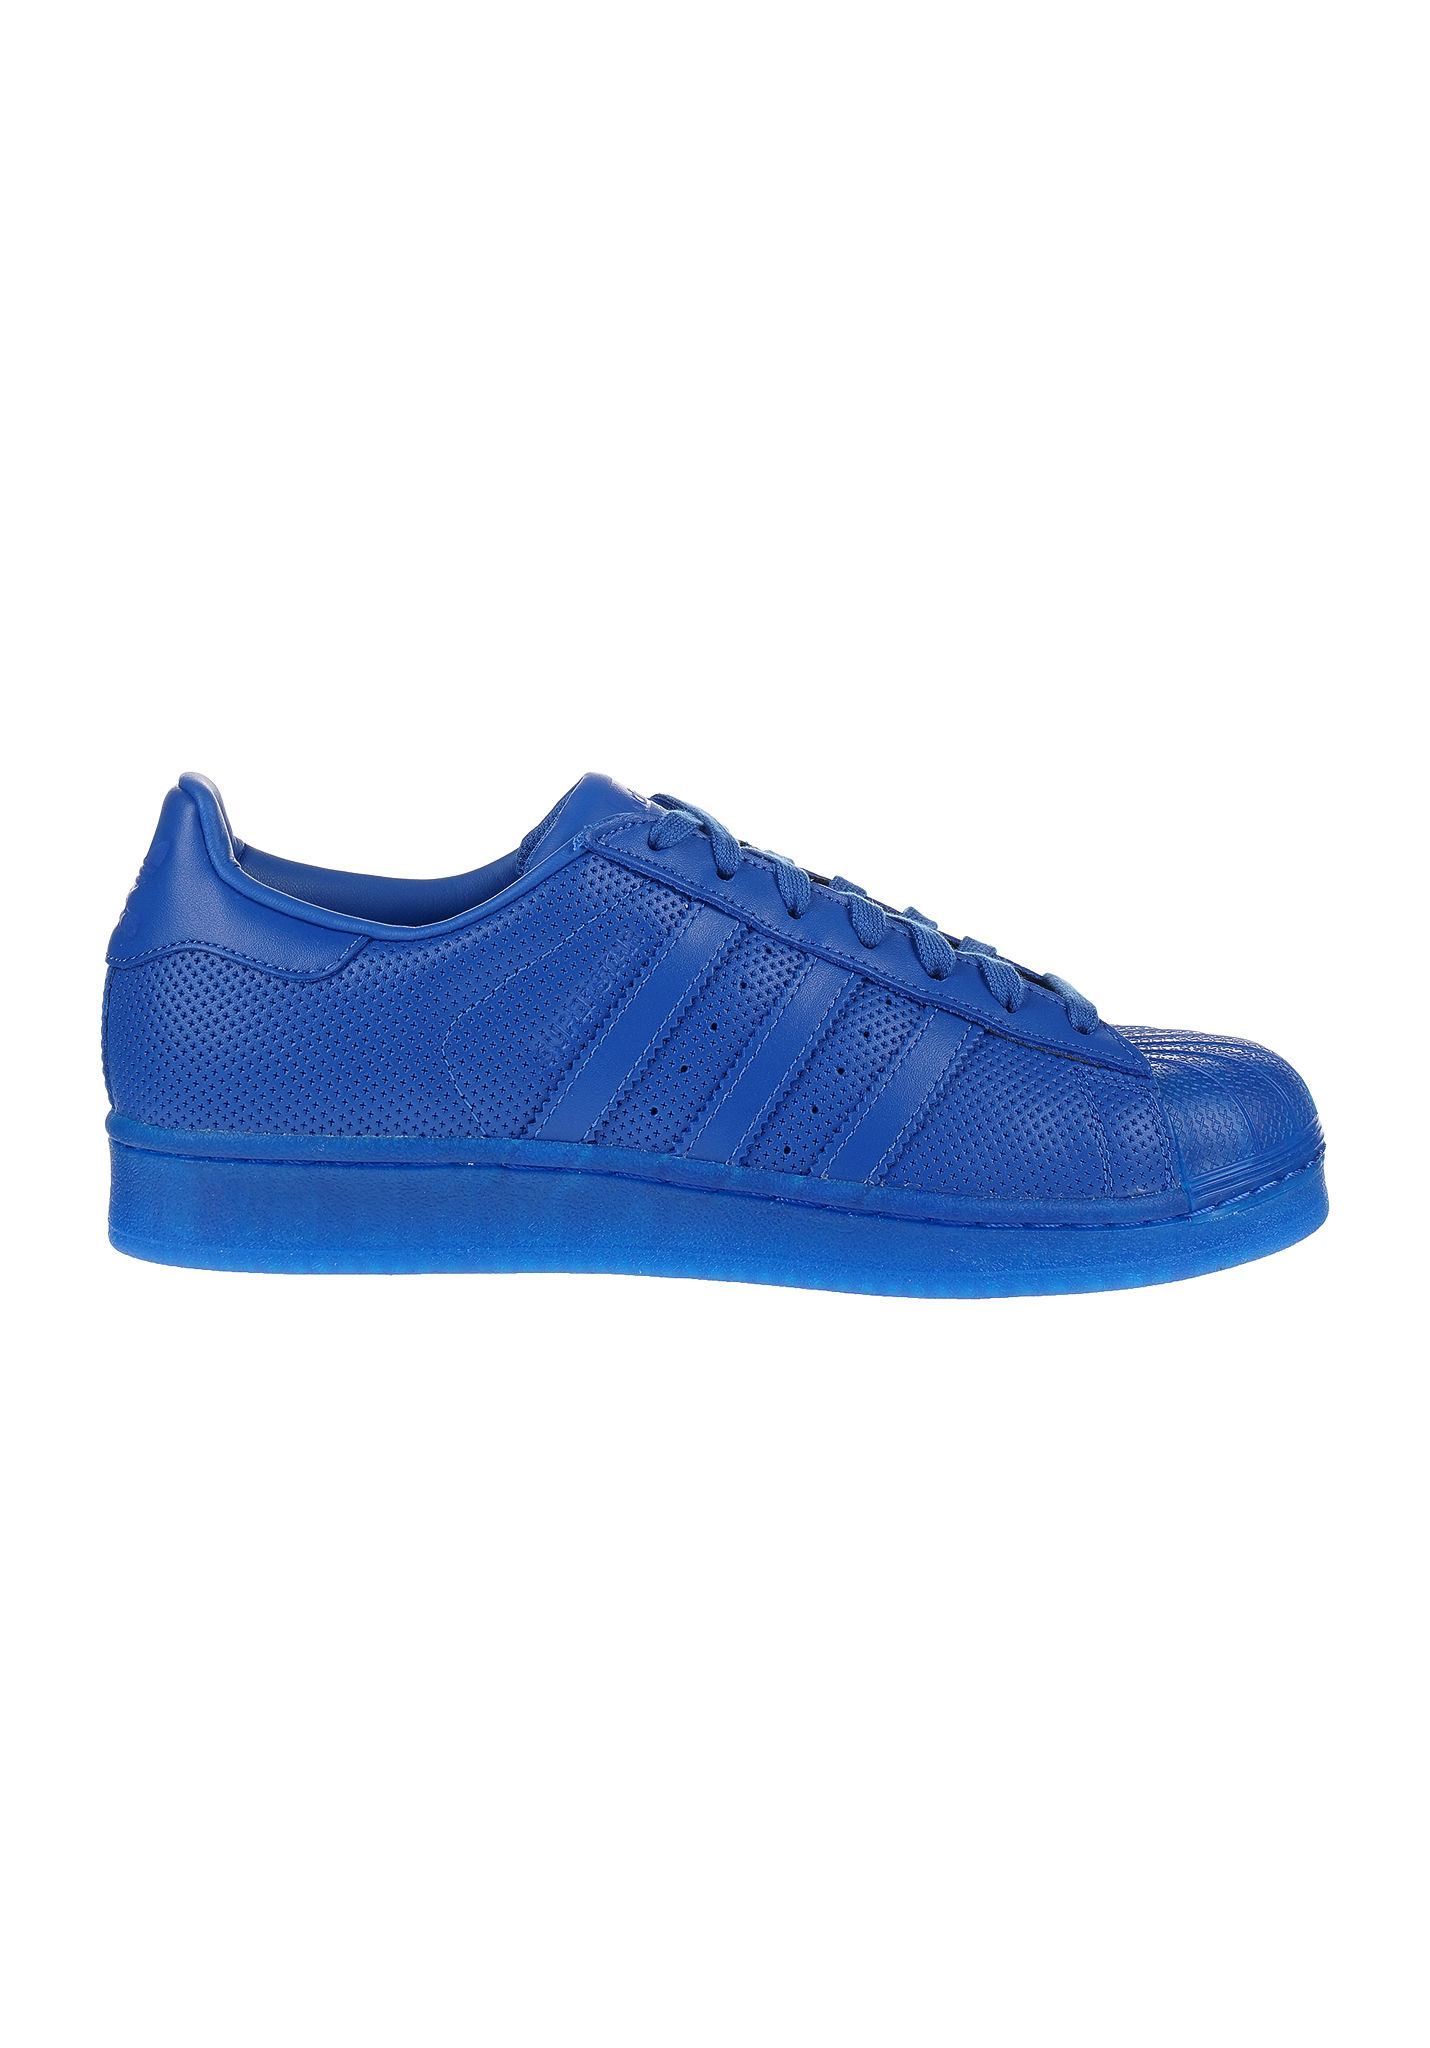 Adidas Superstar Heren Blauw